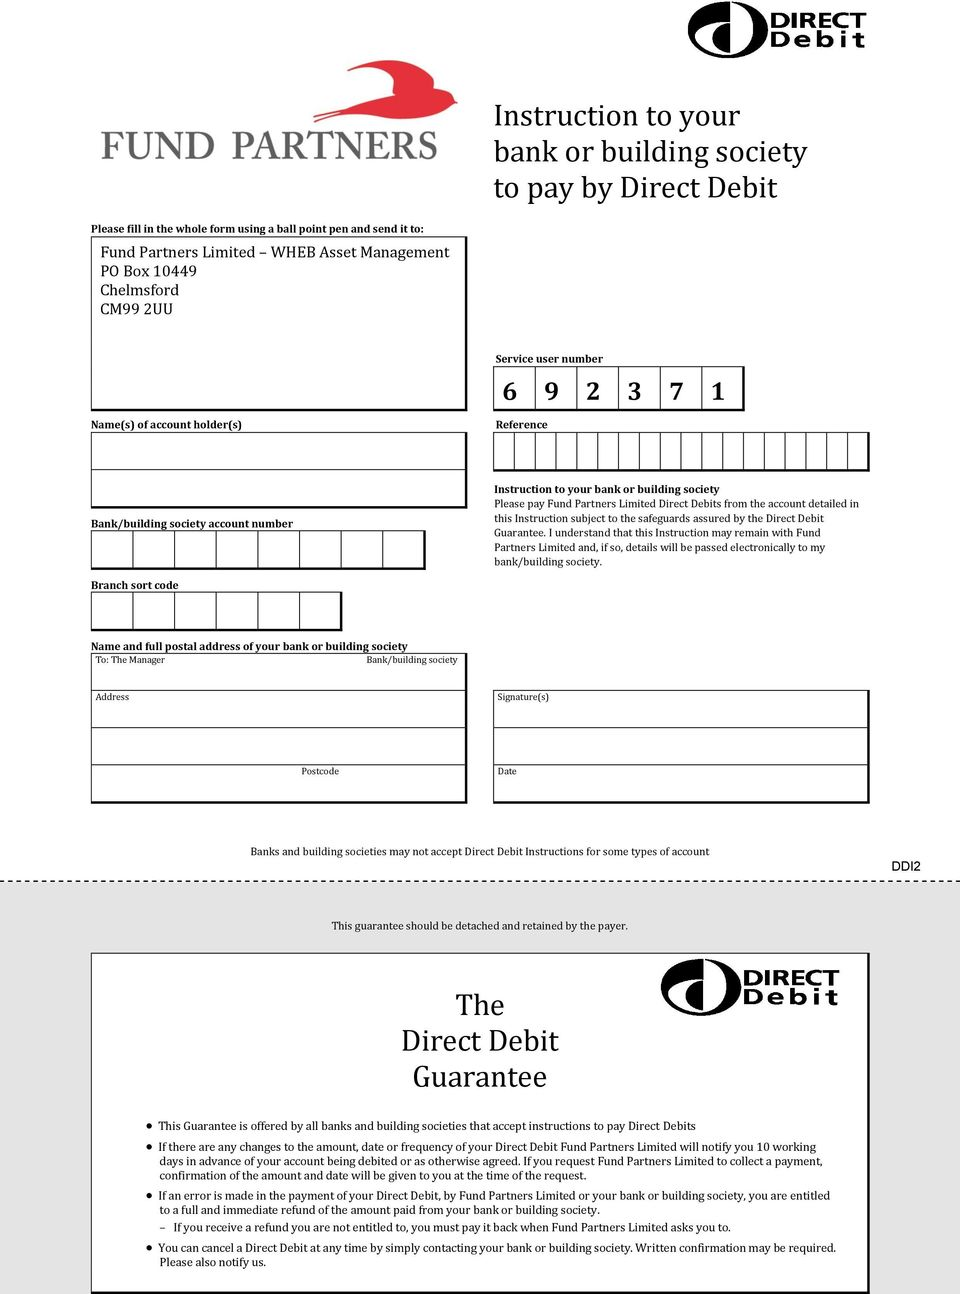 Limited Direct Debits from the account detailed in this Instruction subject to the safeguards assured by the Direct Debit Guarantee.